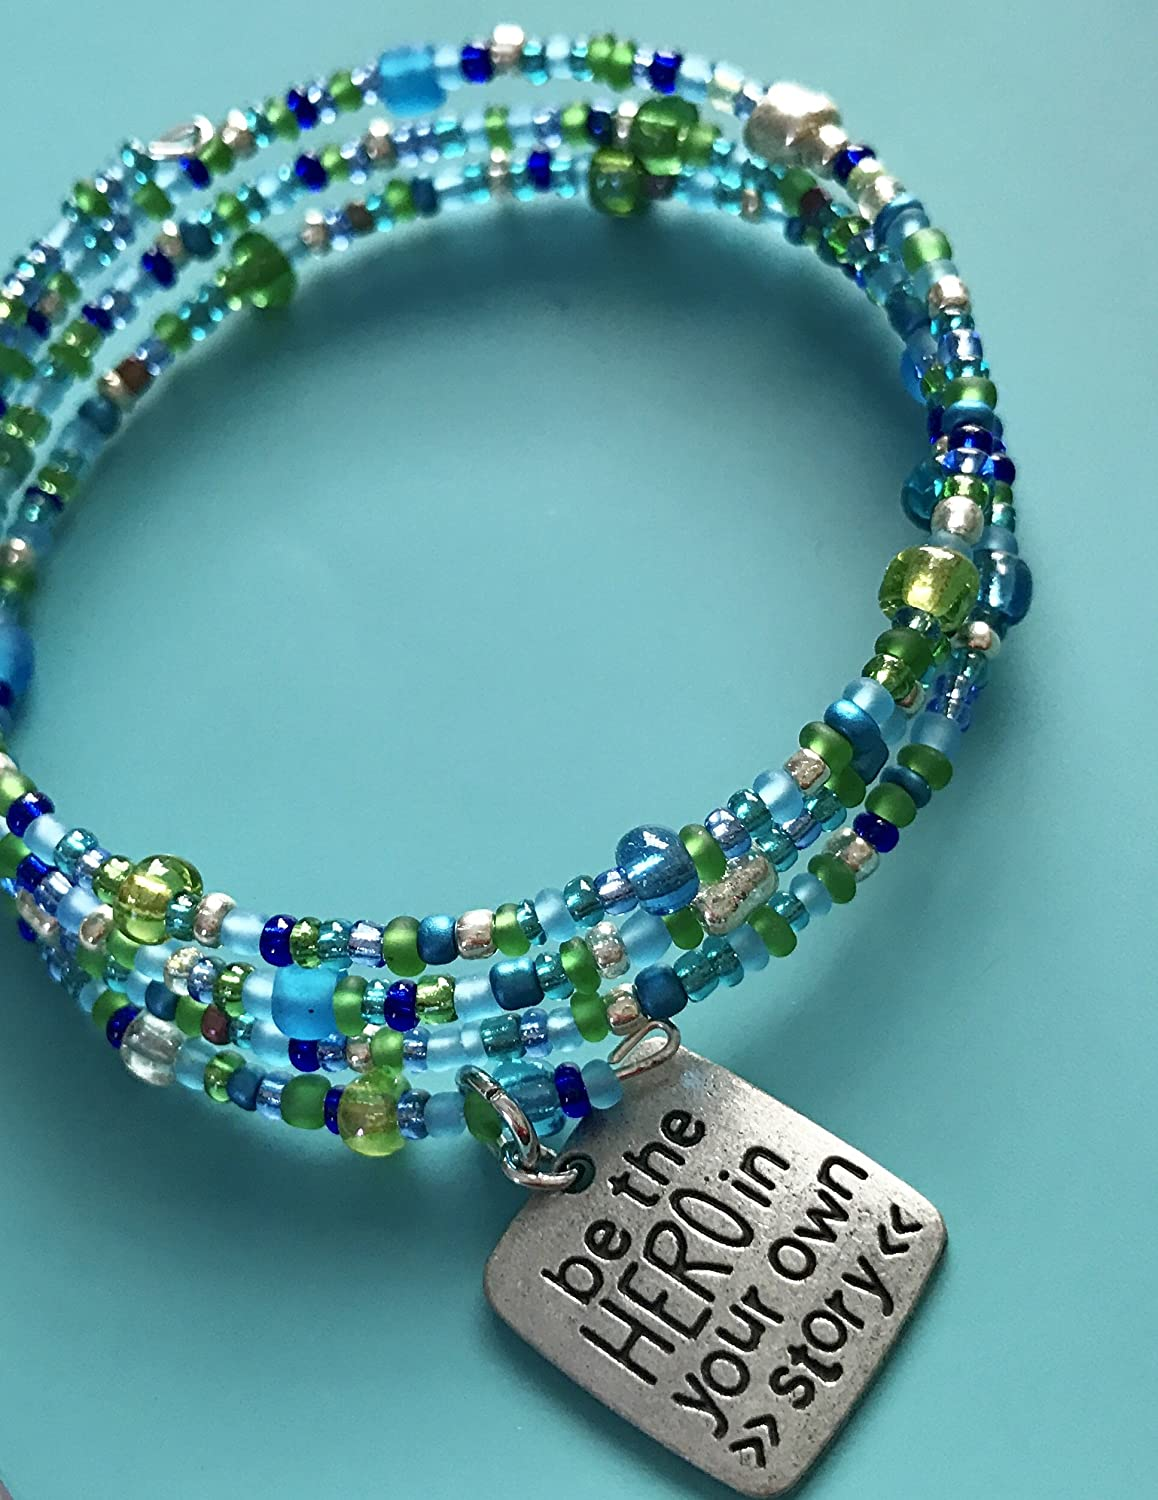 Amazon.com: Triple wrap memory wire bracelet with glass beads and ...